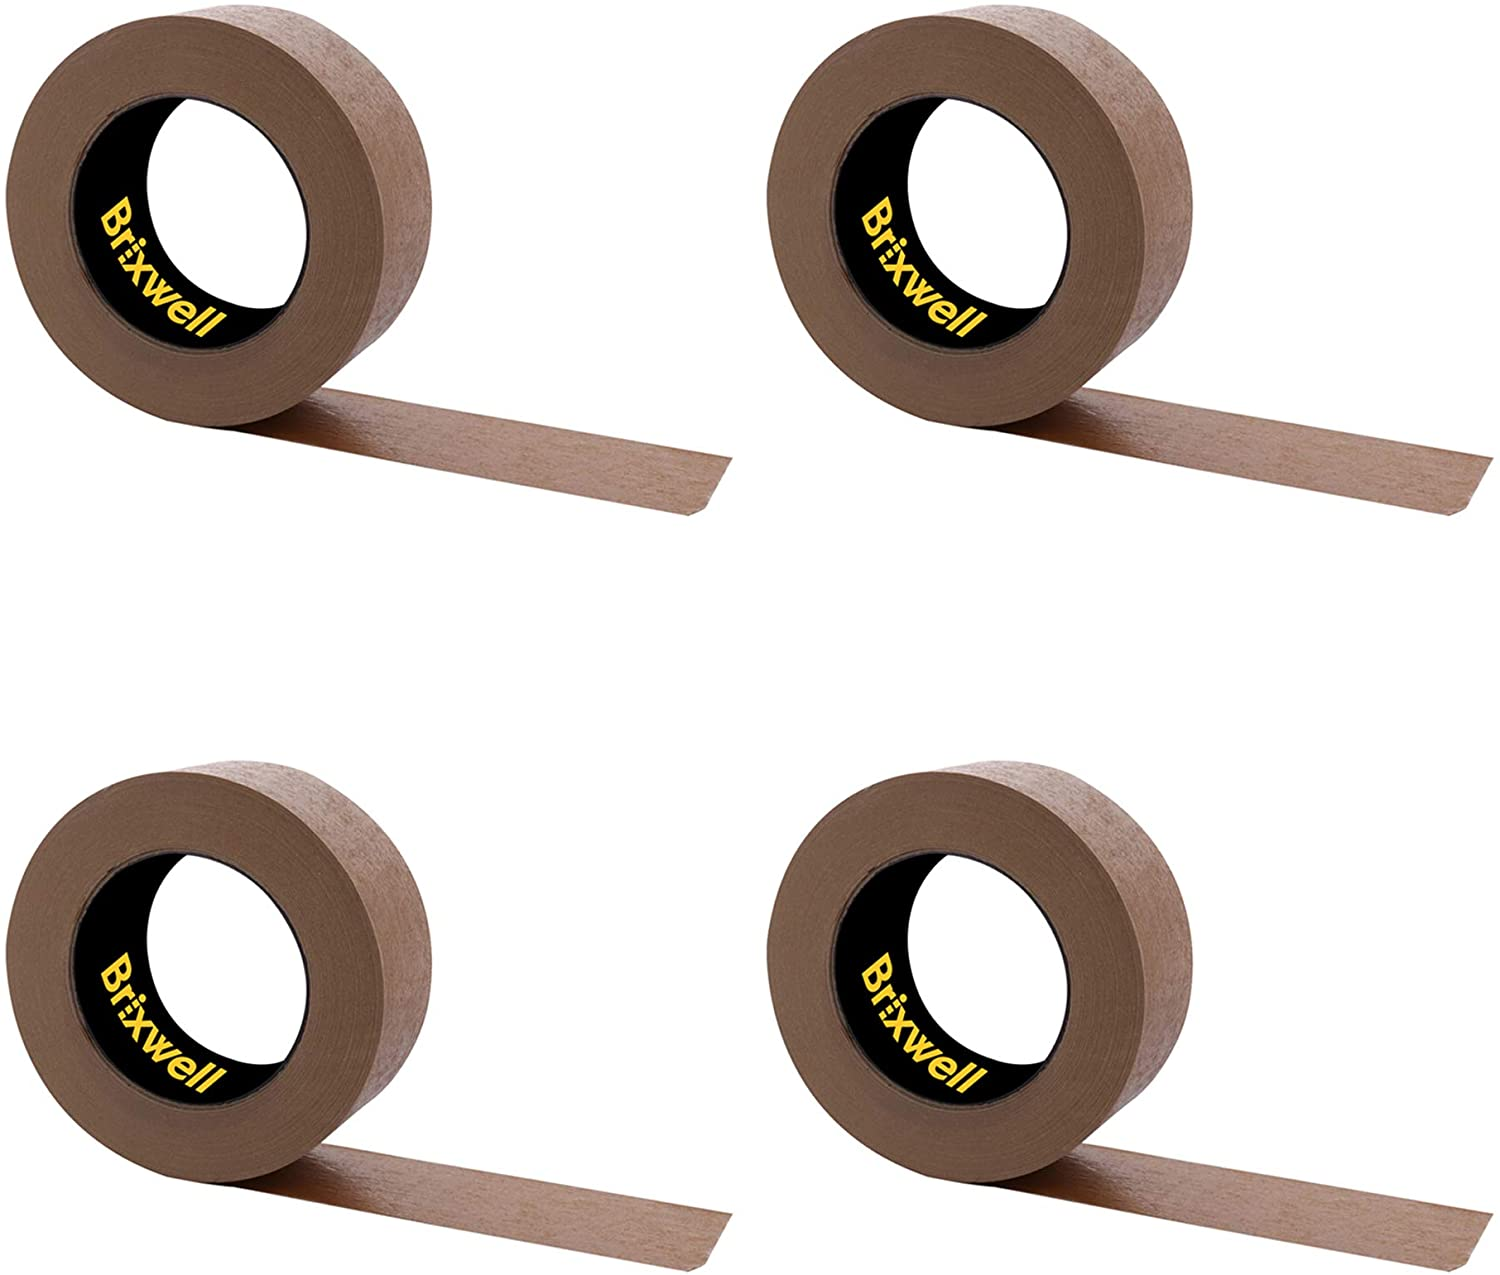 Brixwell 4 Rolls - Flatback Brown Paper Packing Tape 2 Inch x 60 Yard Made in the USA